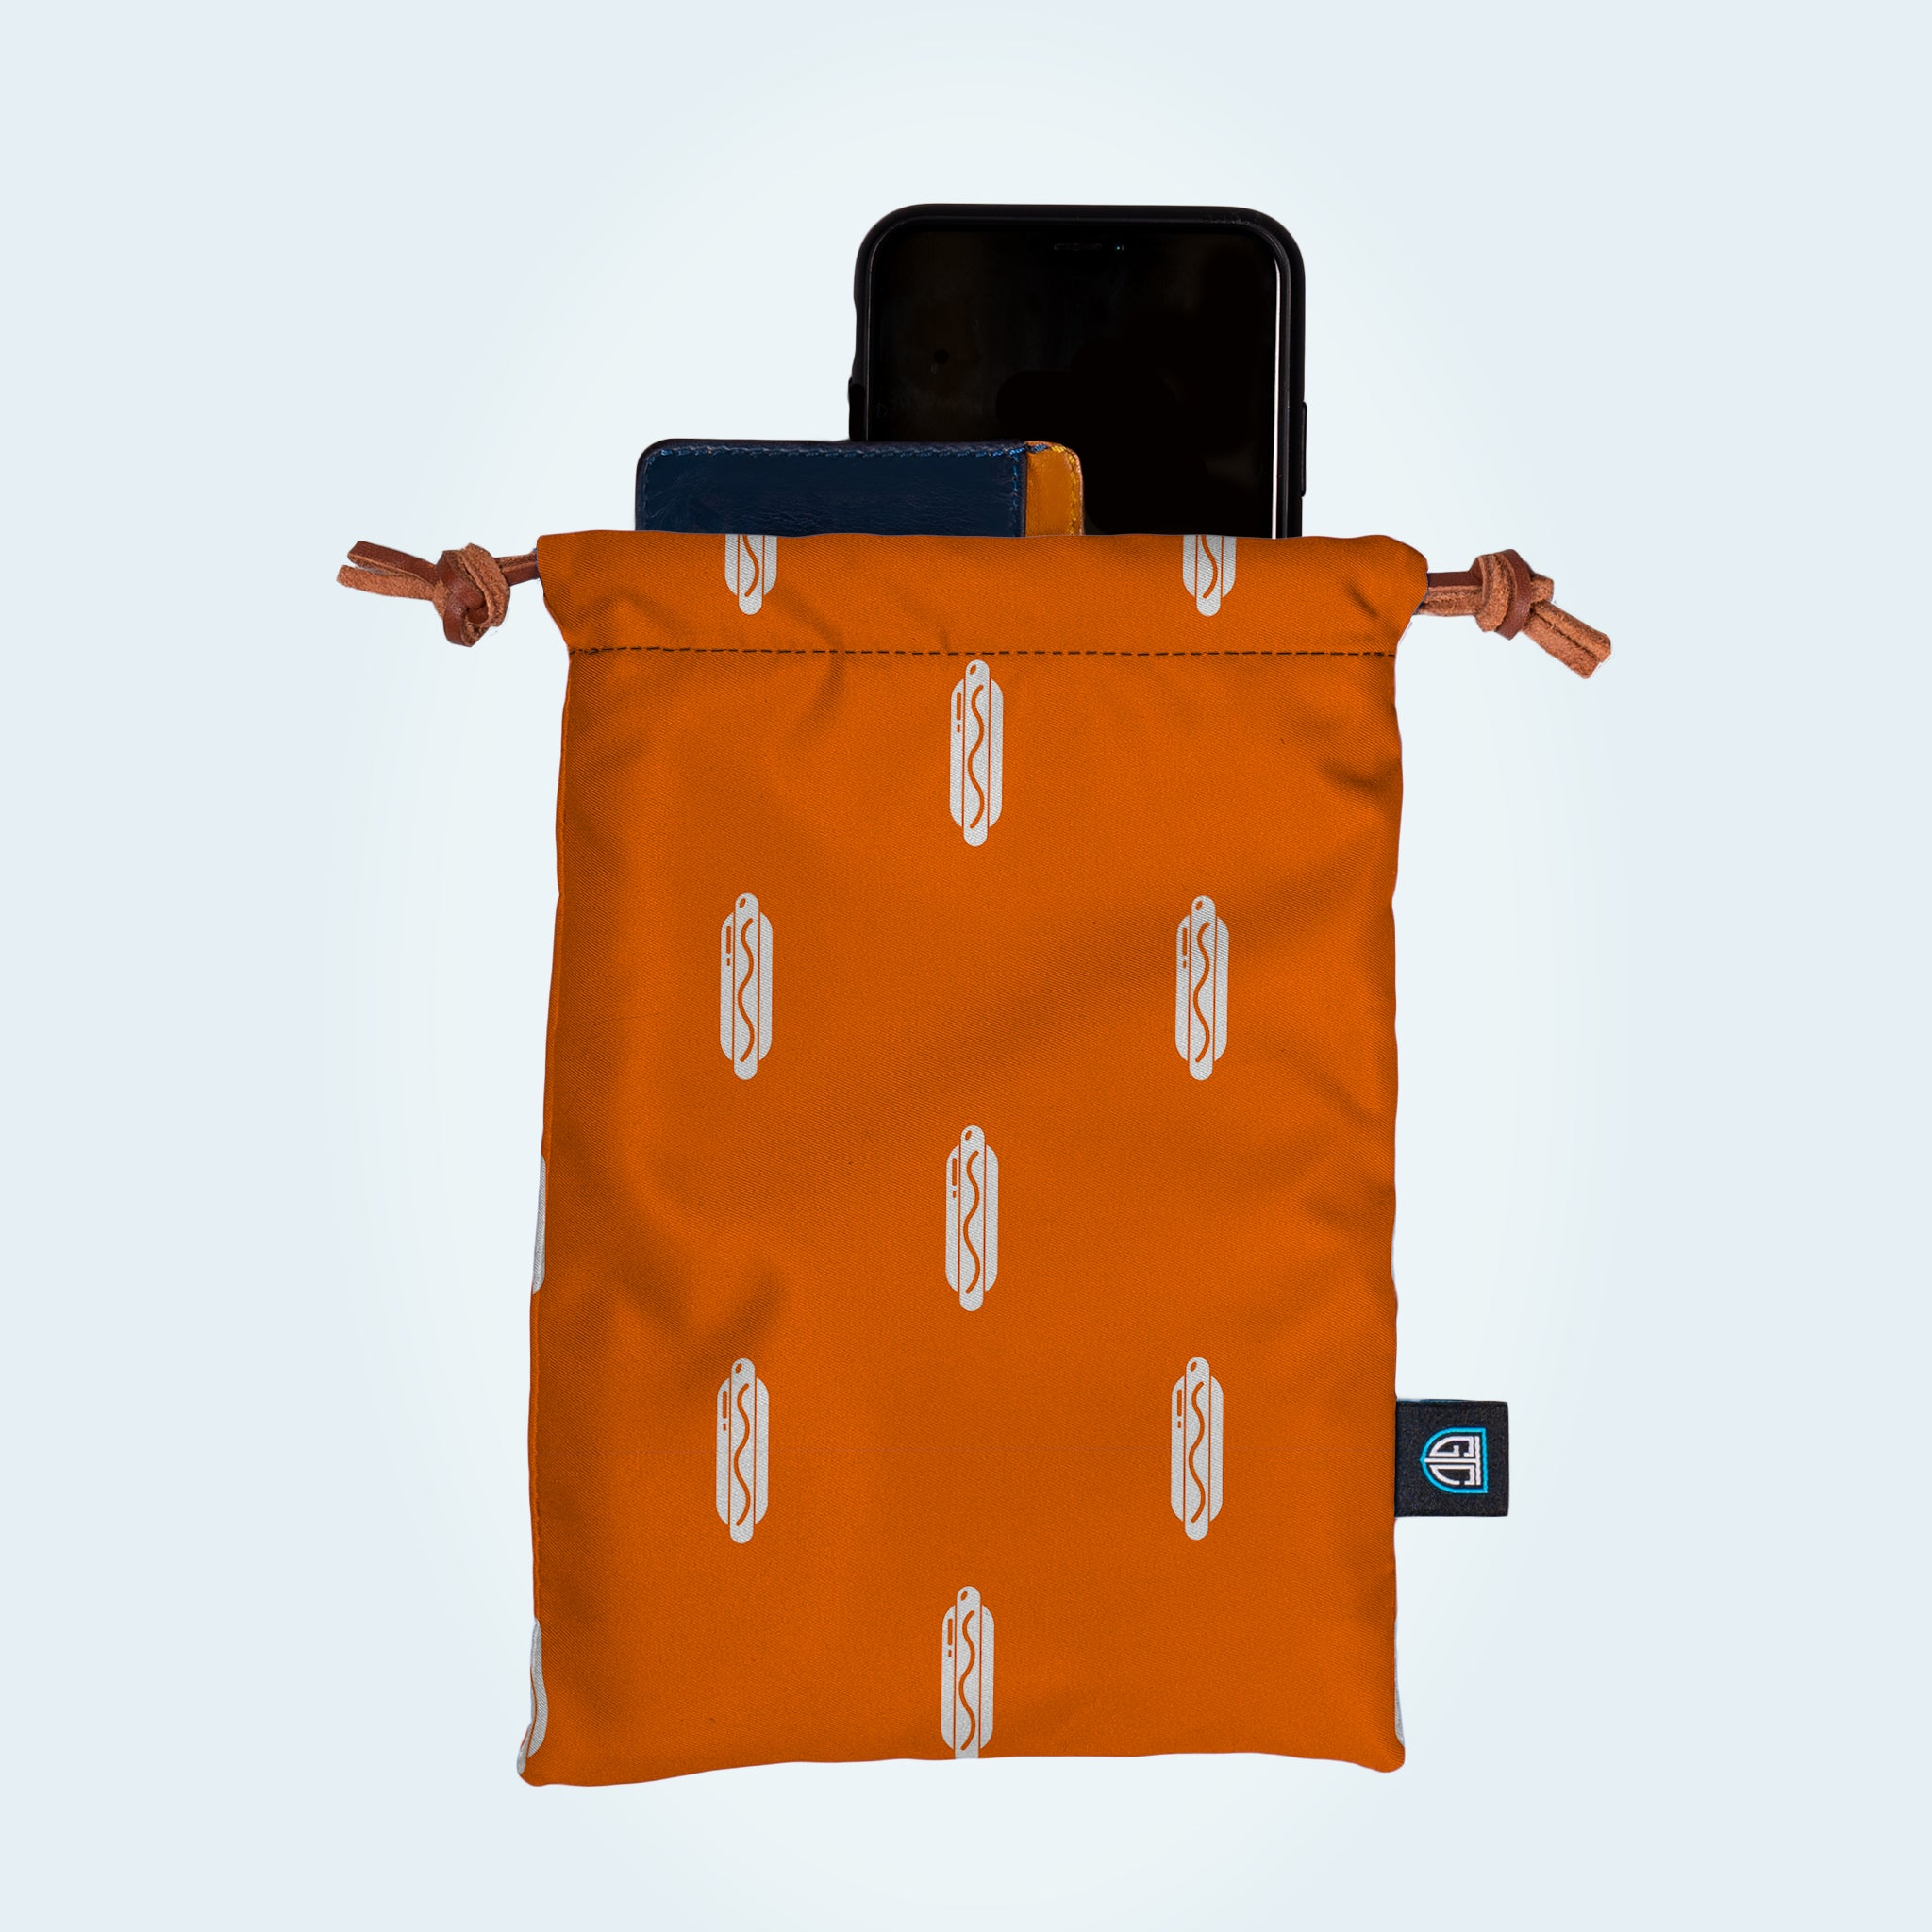 Hotdog Accessory Bag - personalised golf clothing, golf teamwear, Head Covers, Towels & accessories online